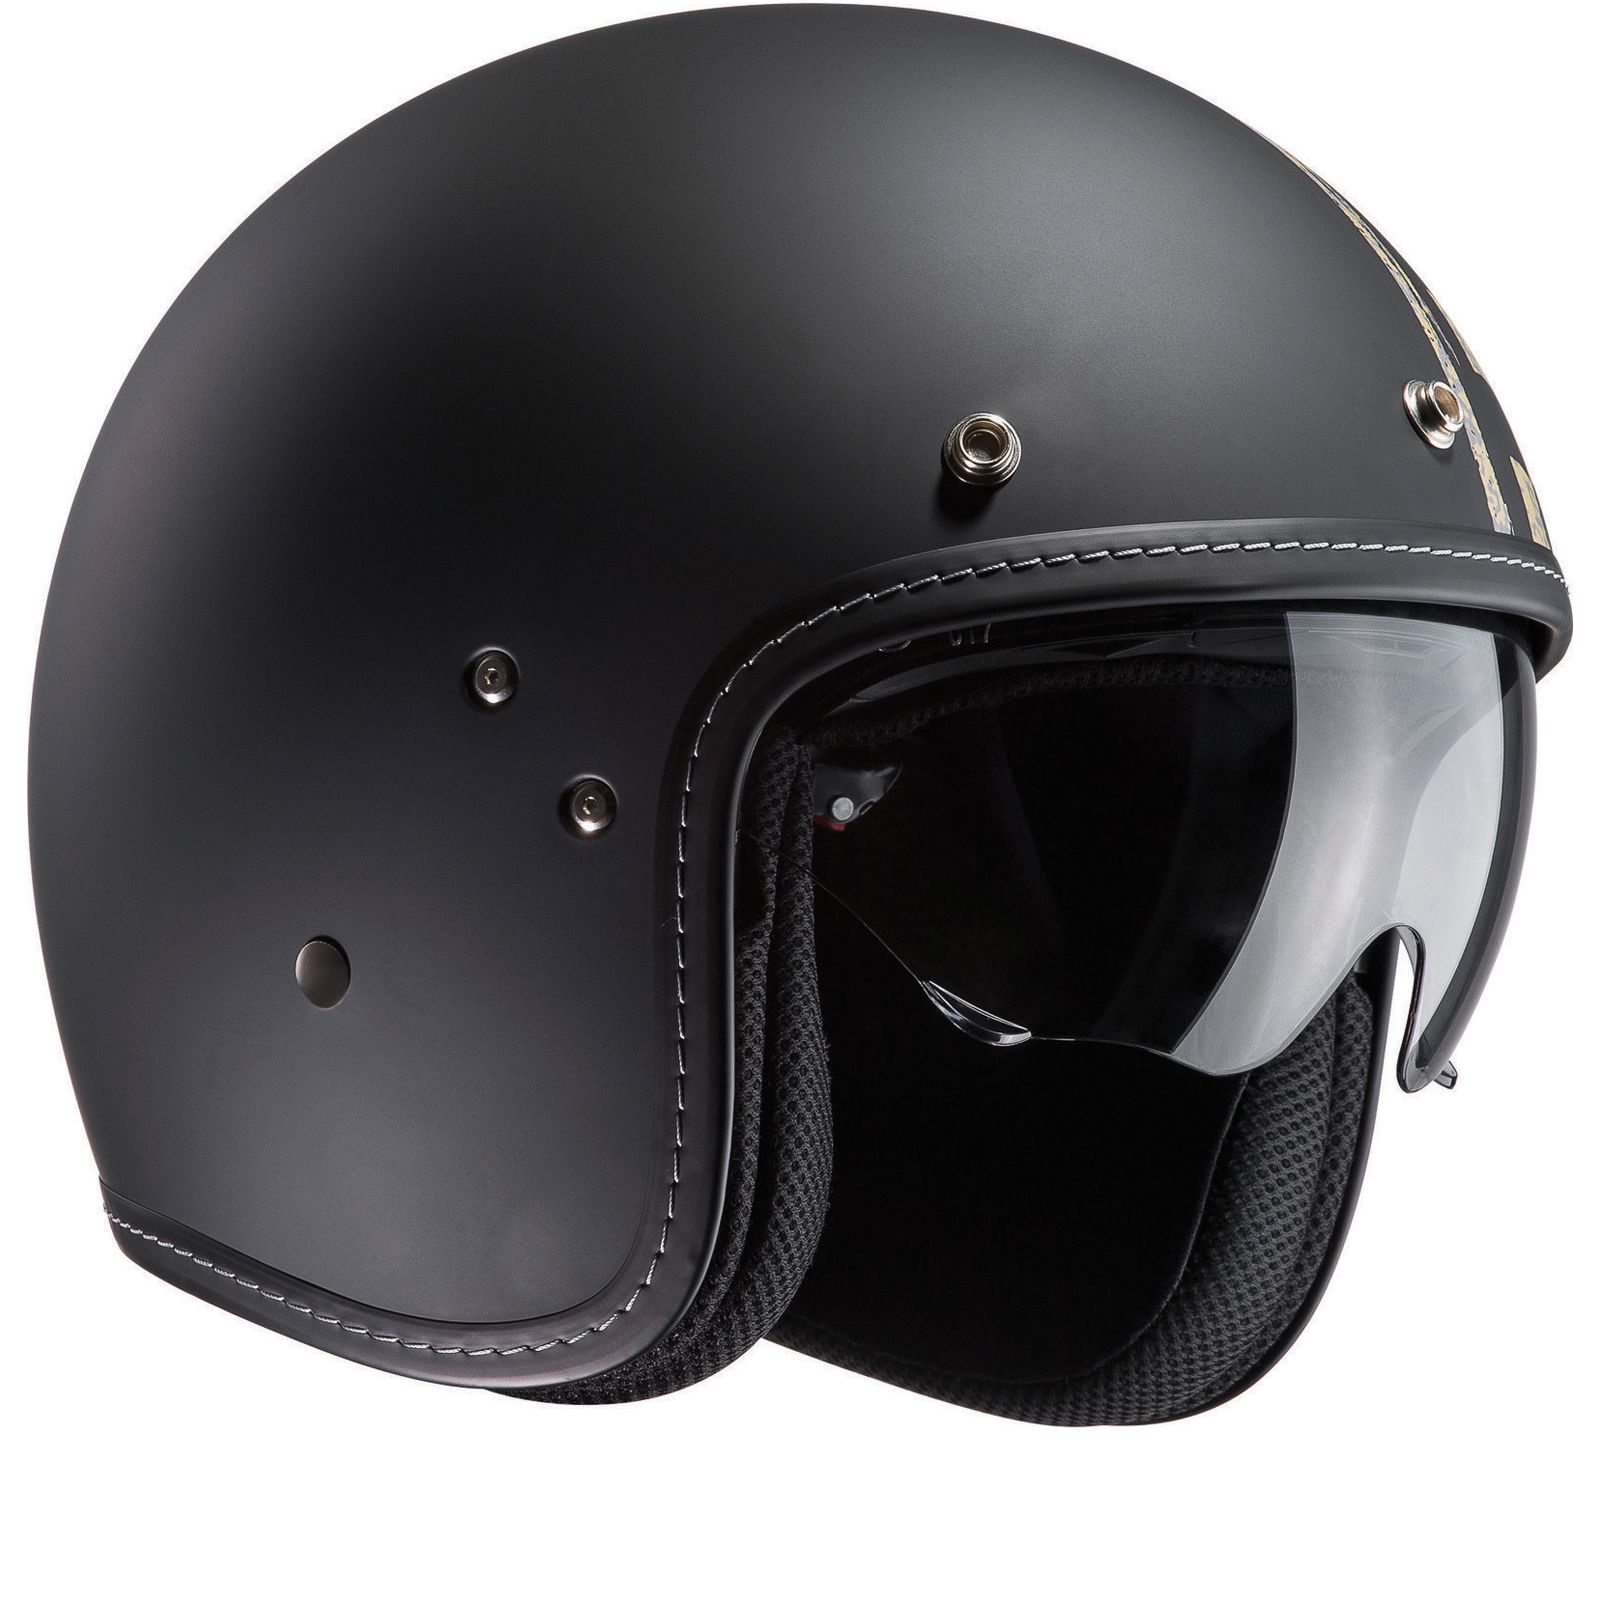 hjc fg 70s burnout open face motorcycle helmet. Black Bedroom Furniture Sets. Home Design Ideas